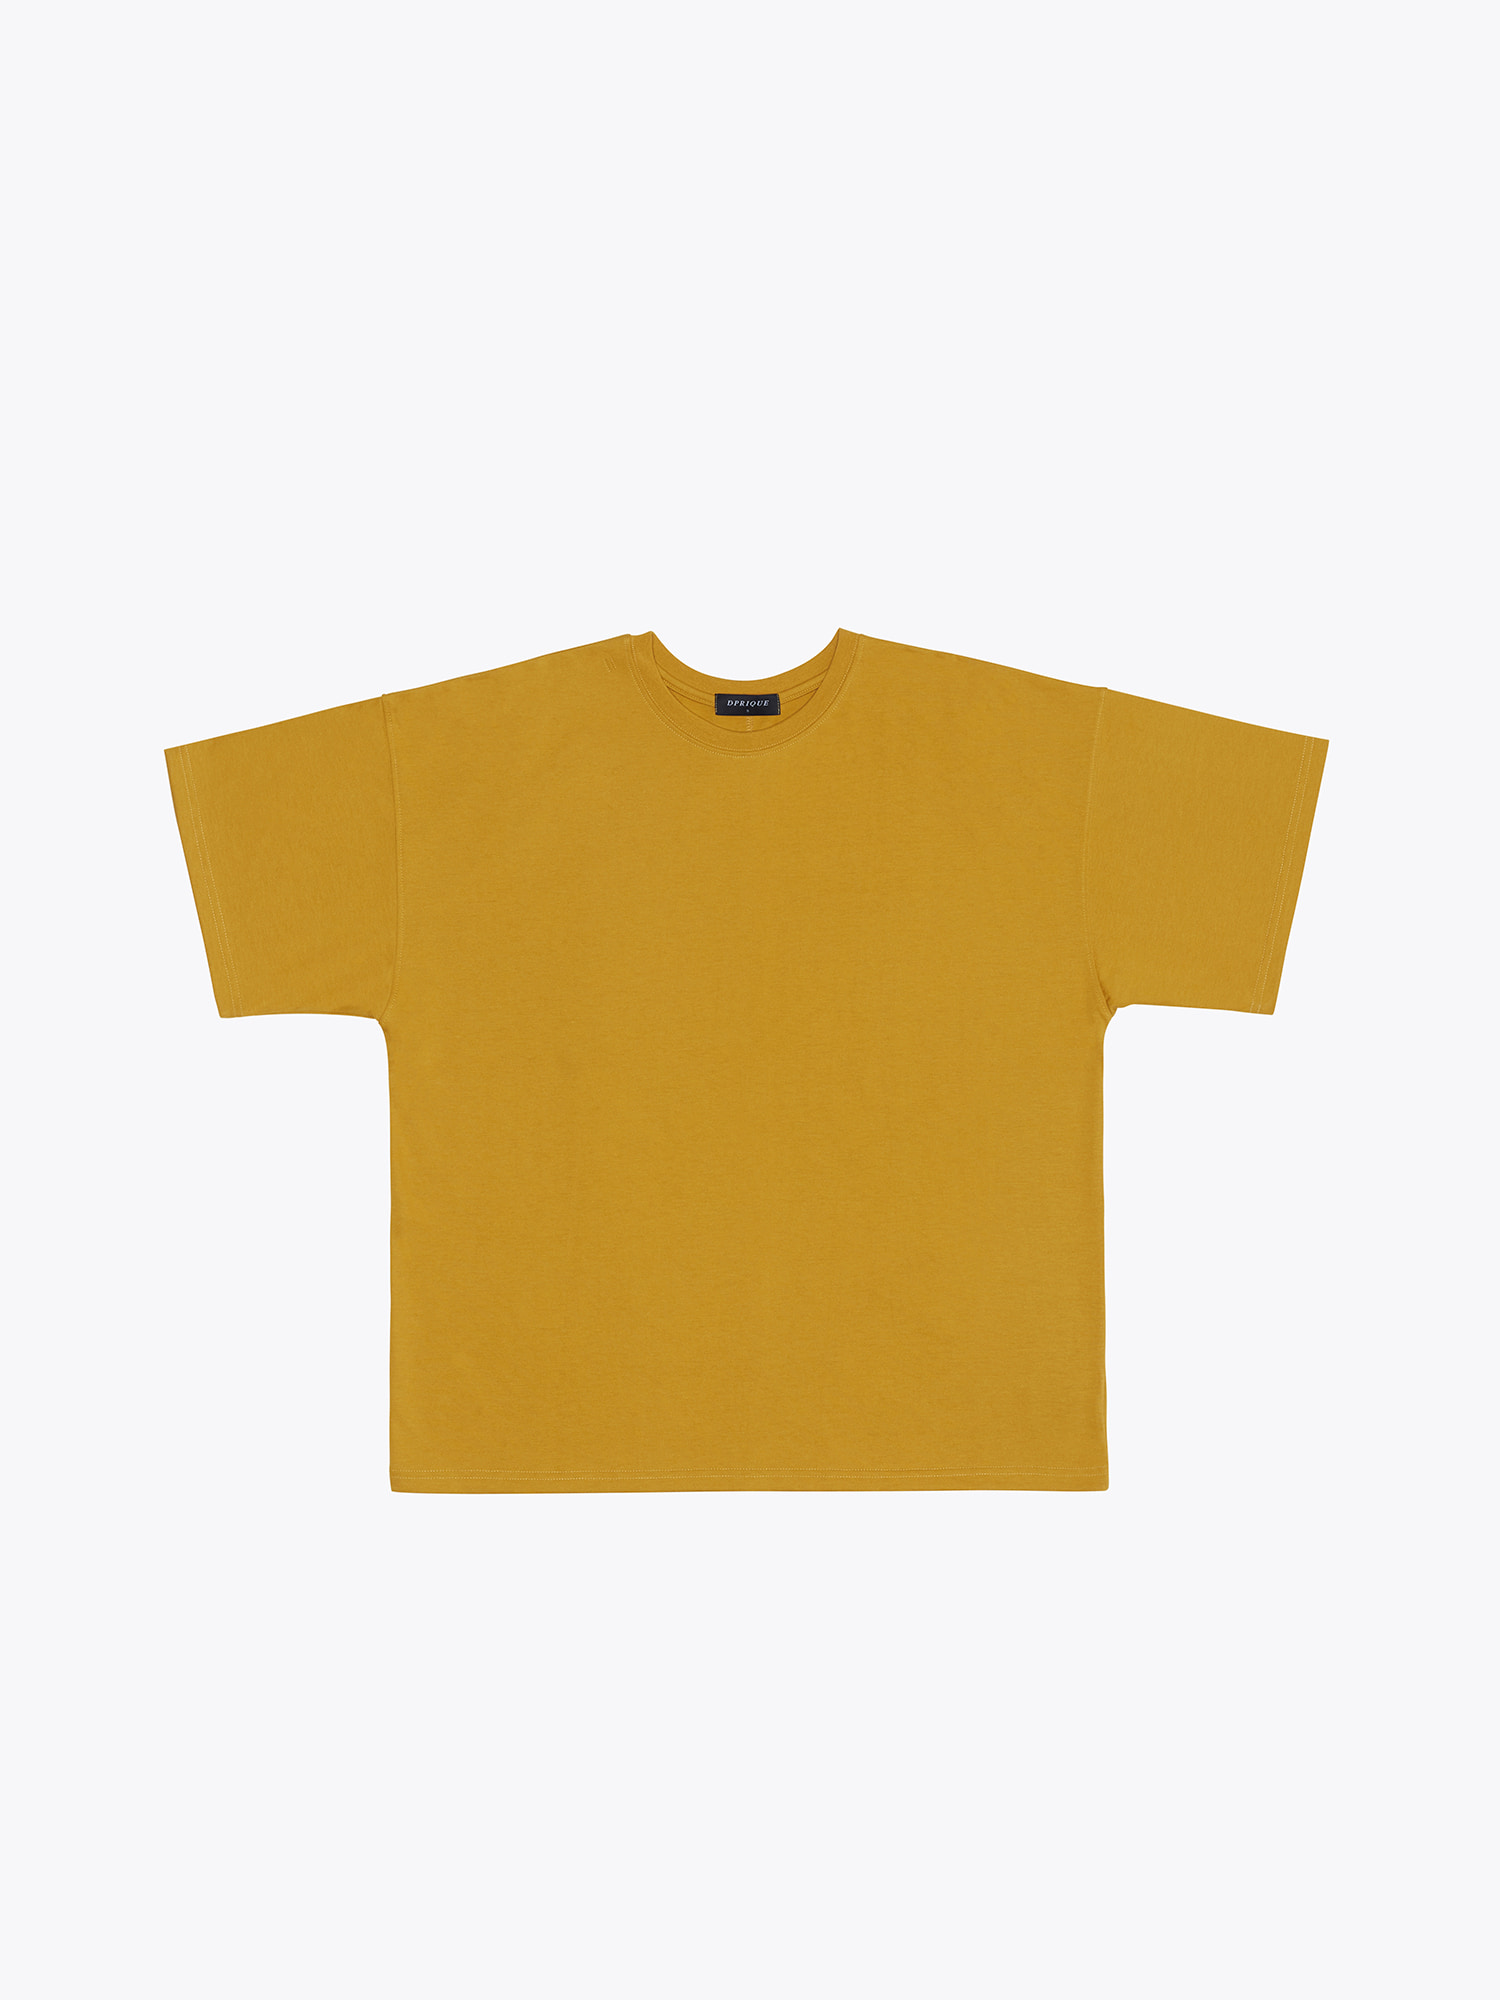 05 Oversized T-Shirt - Yellow